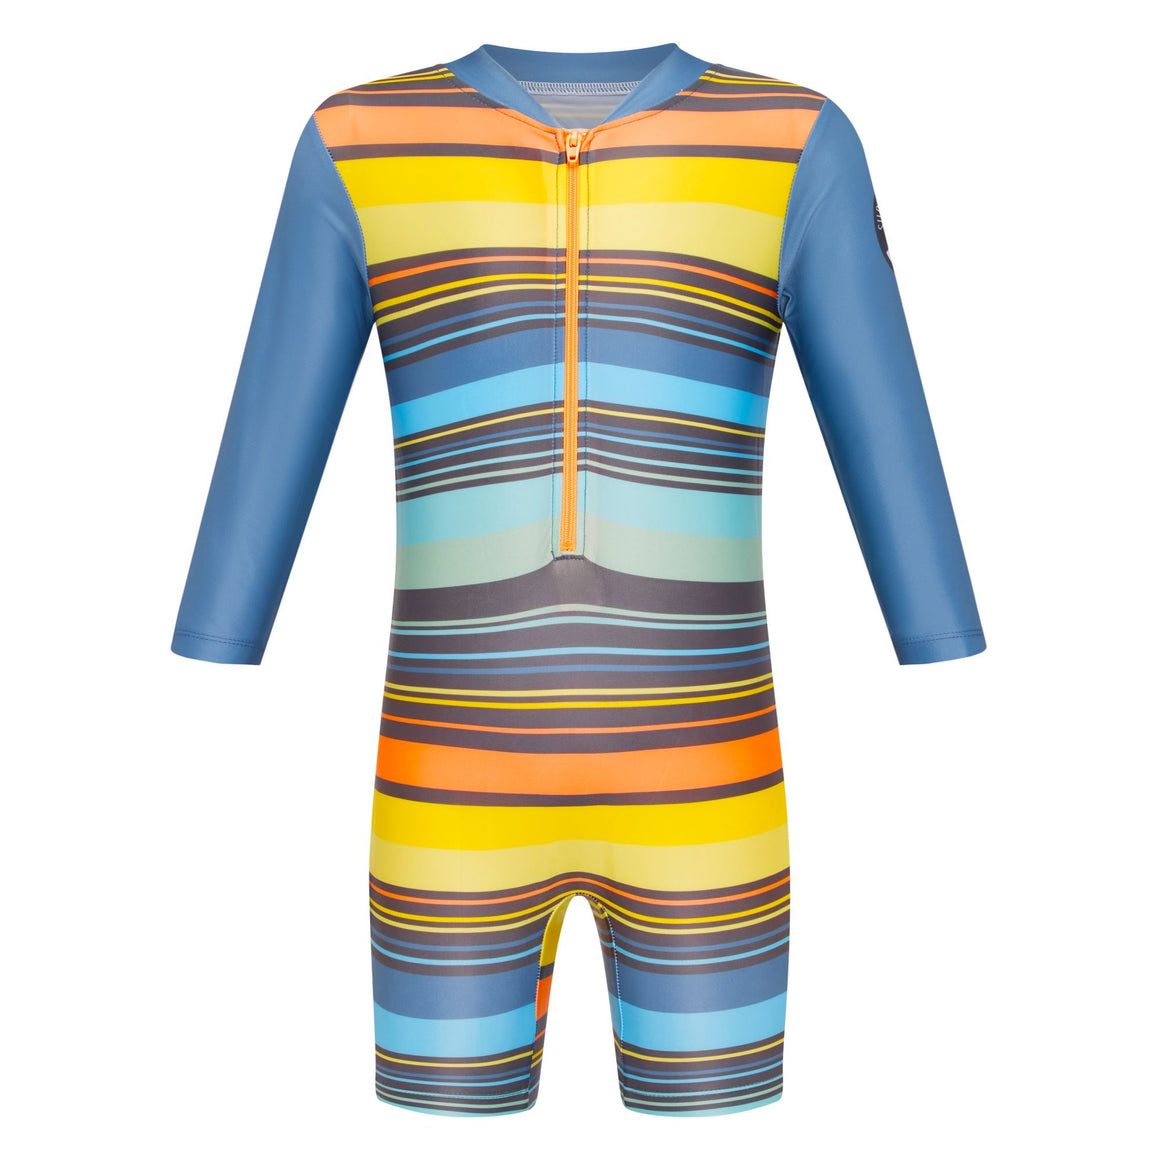 Long Sleeve Sunsuit - Boys Retro Vibes